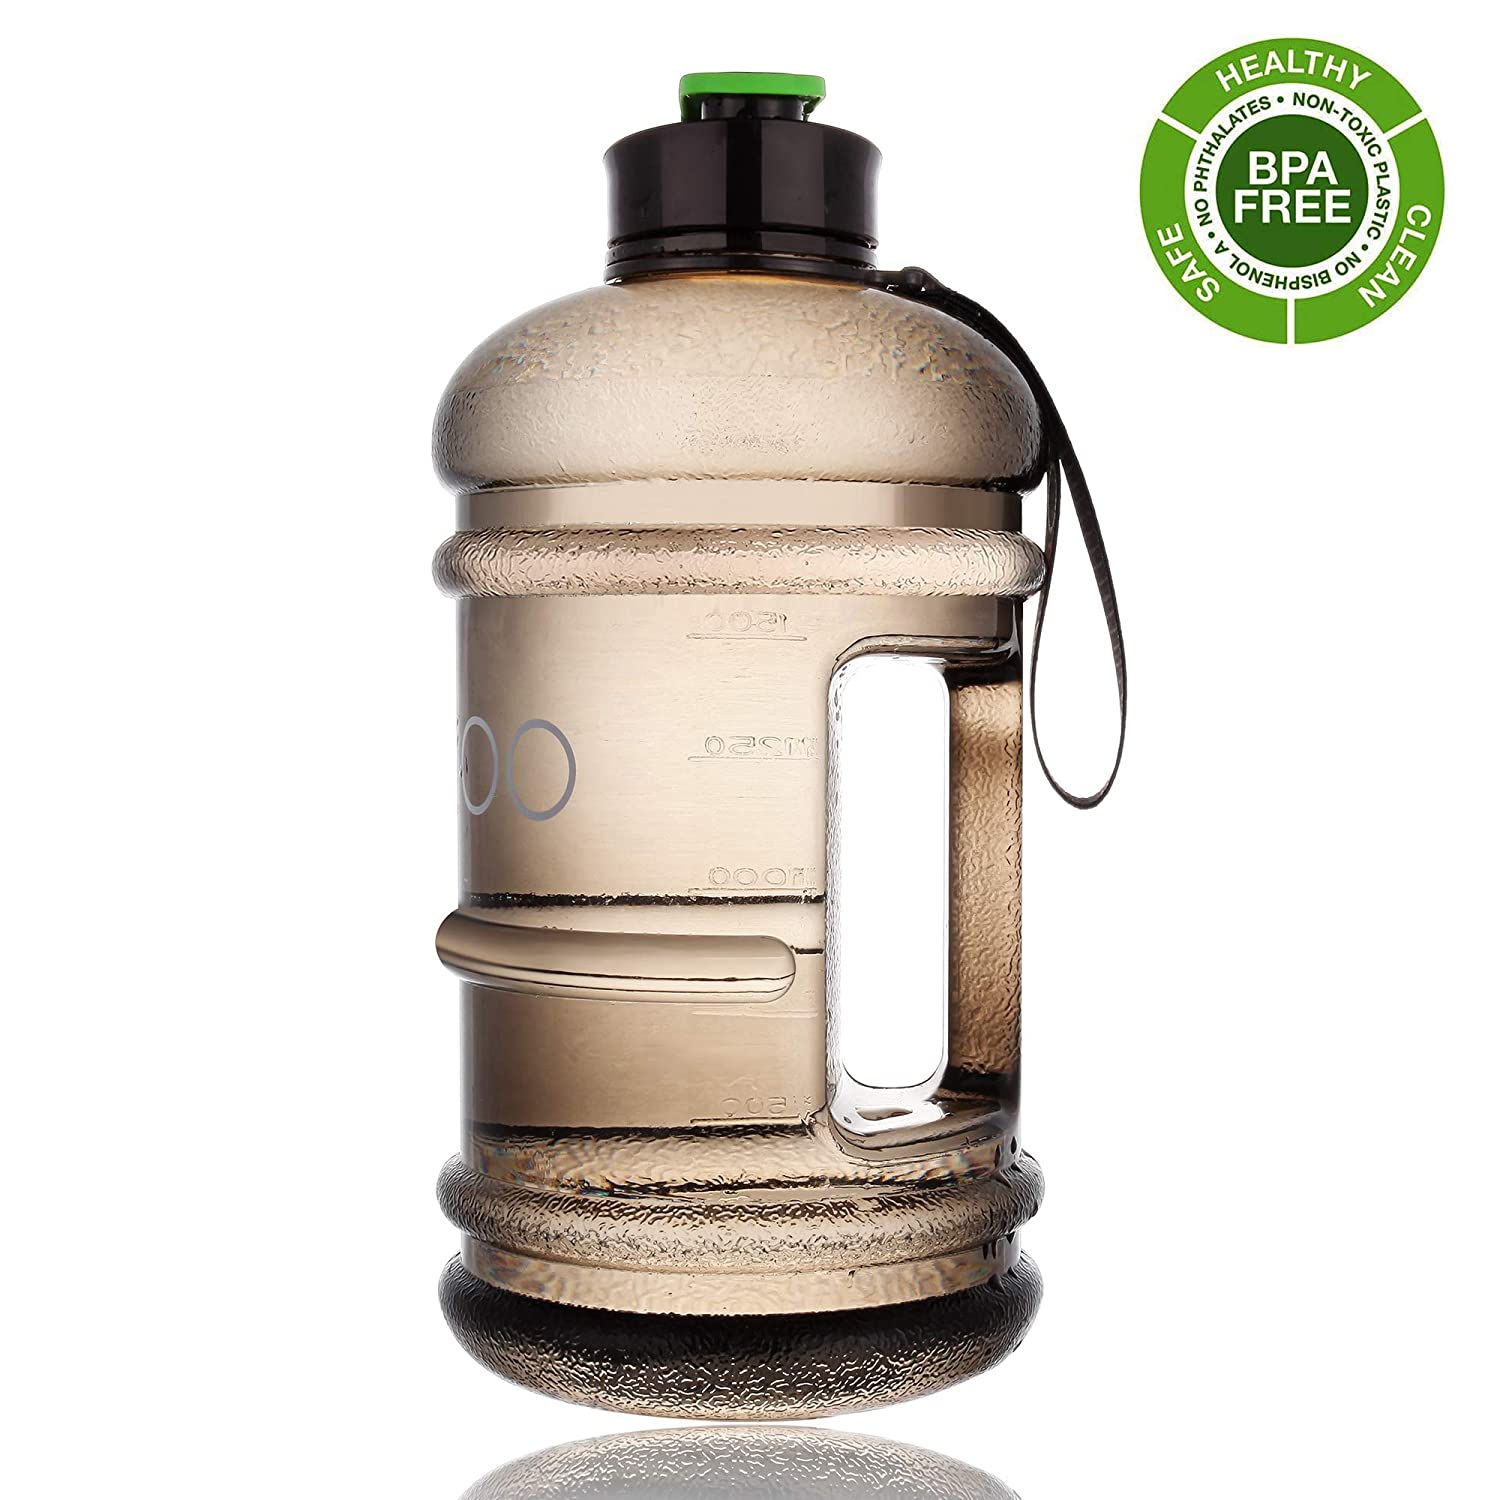 Half Gallon Water Bottle Dishwasher Safe US Eastman Tritan BPA Free Reusable Drinking Gym Water Bottle for Sports Travel Camping Hiking Hydrate Large Water Jug with Spout